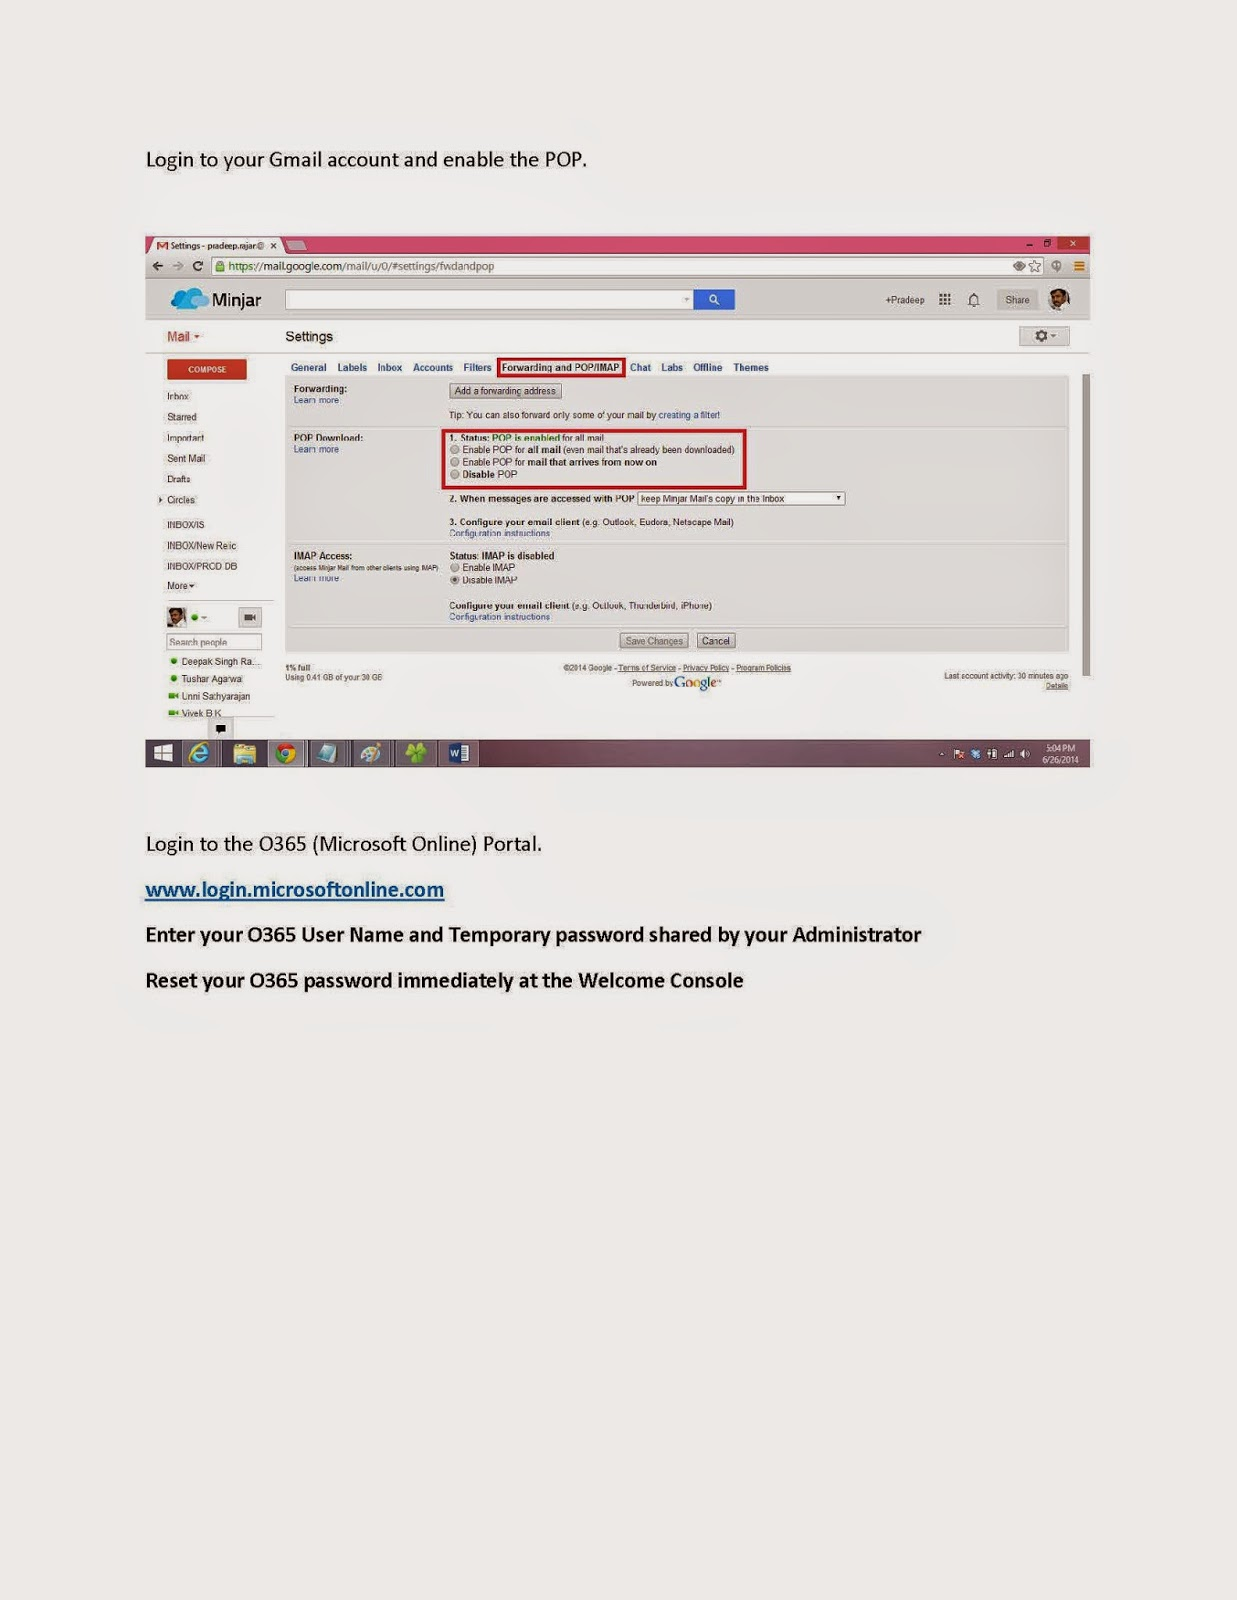 Gmail theme disabled - This Post Helps To Perform Self Migration From Gmail To O365 Without Administrator Help